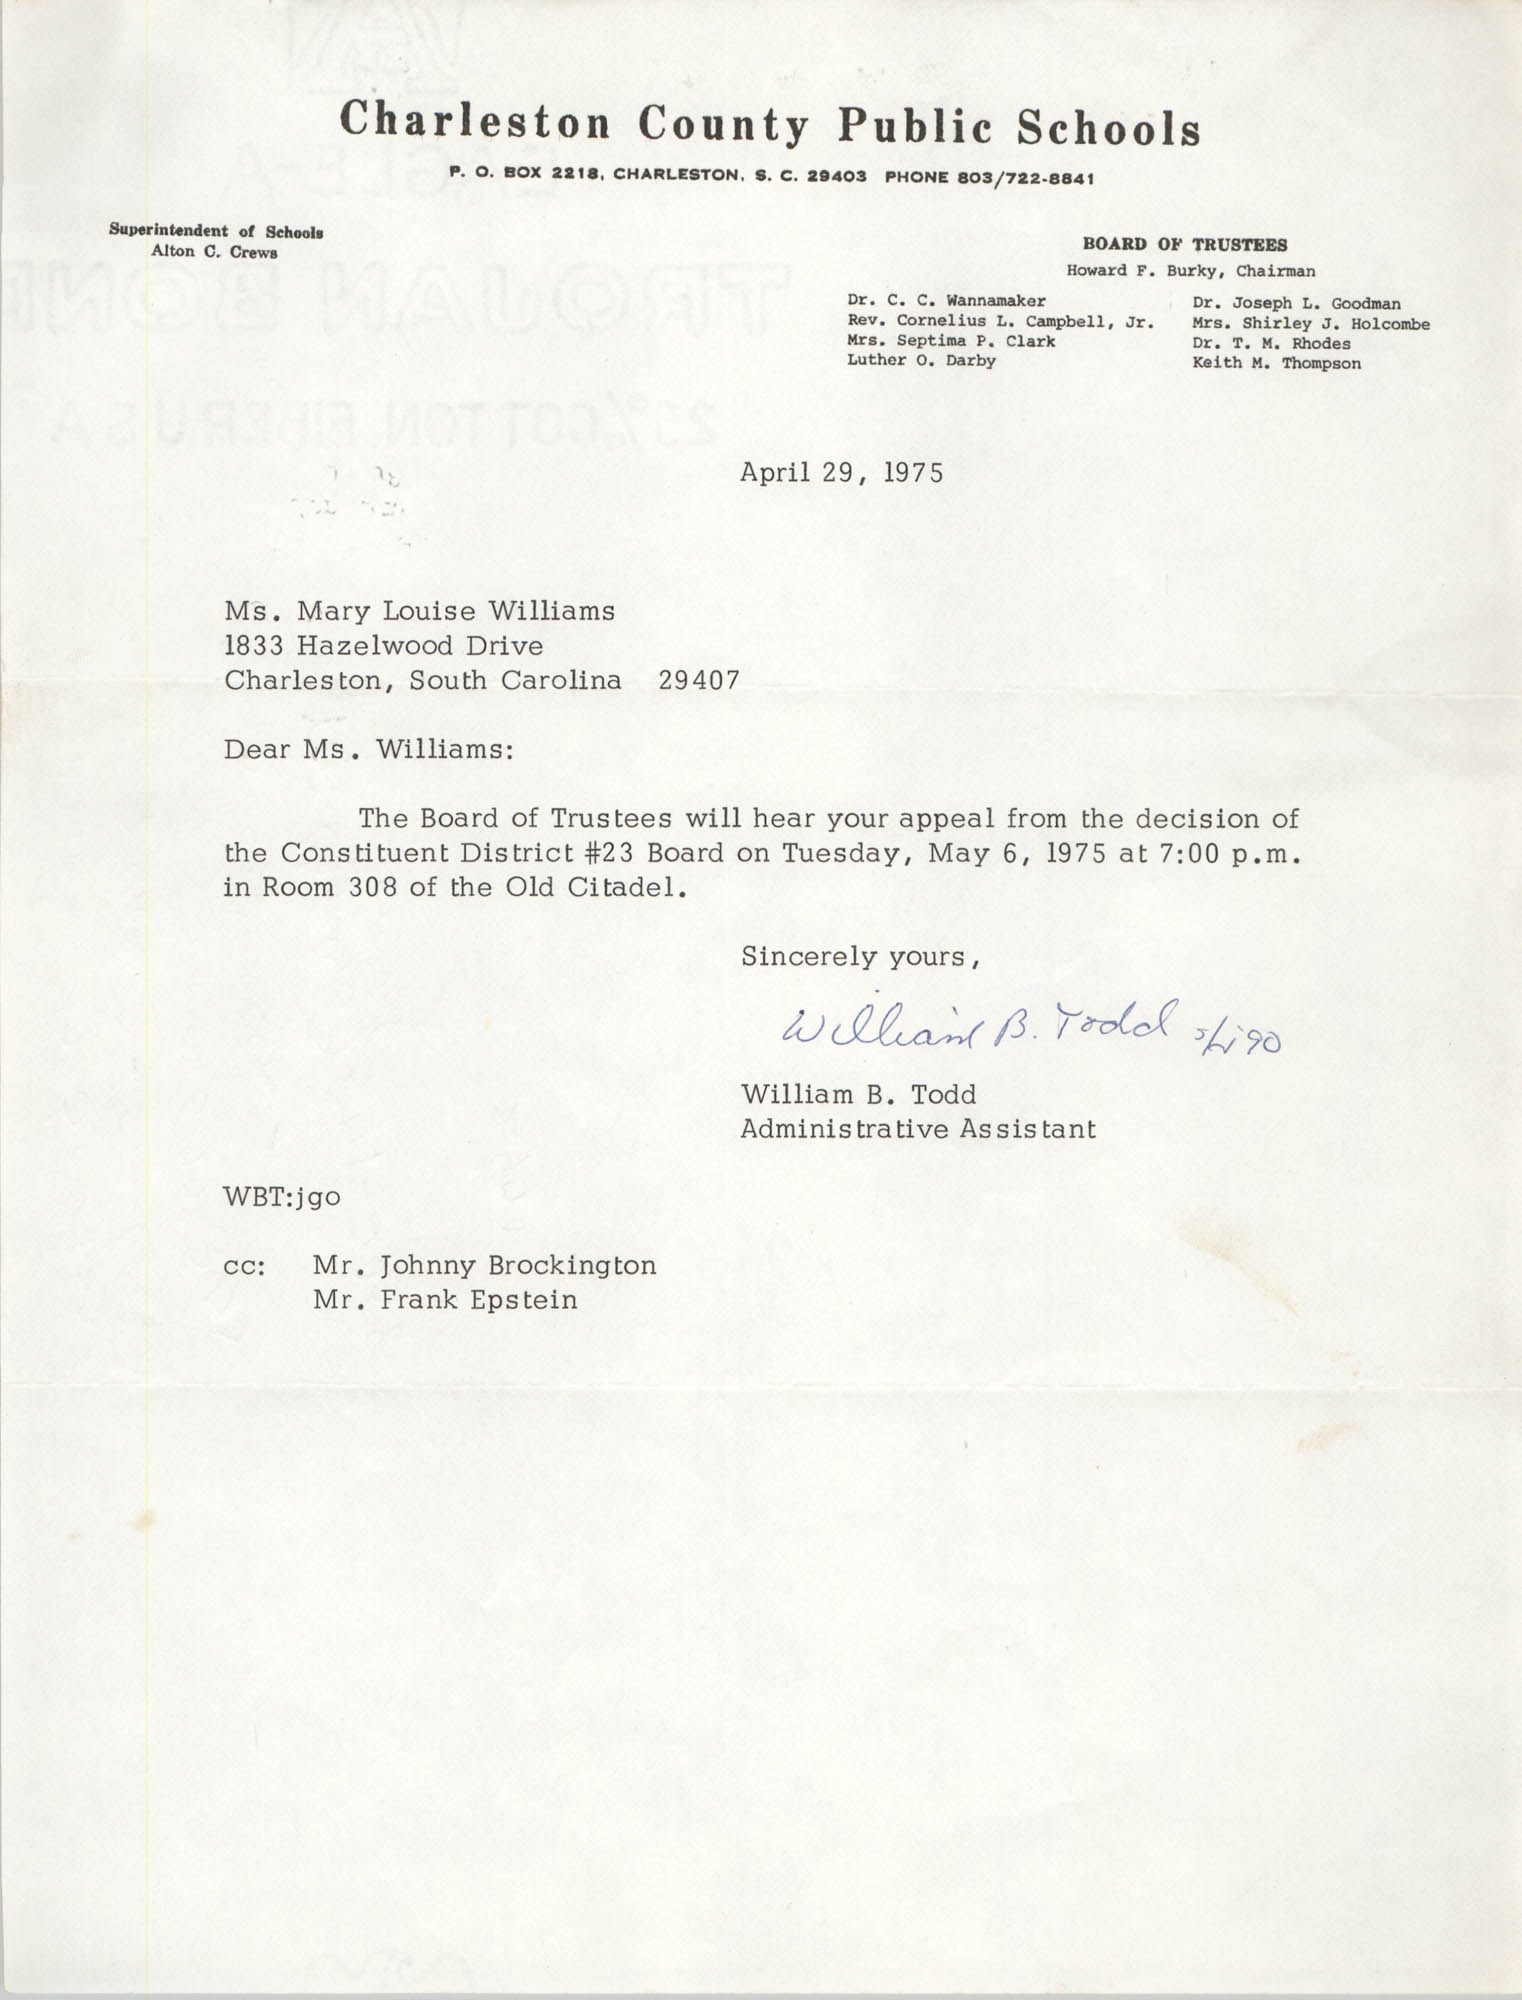 Letter from William B. Todd to Mary L. Williams, April 29, 1975